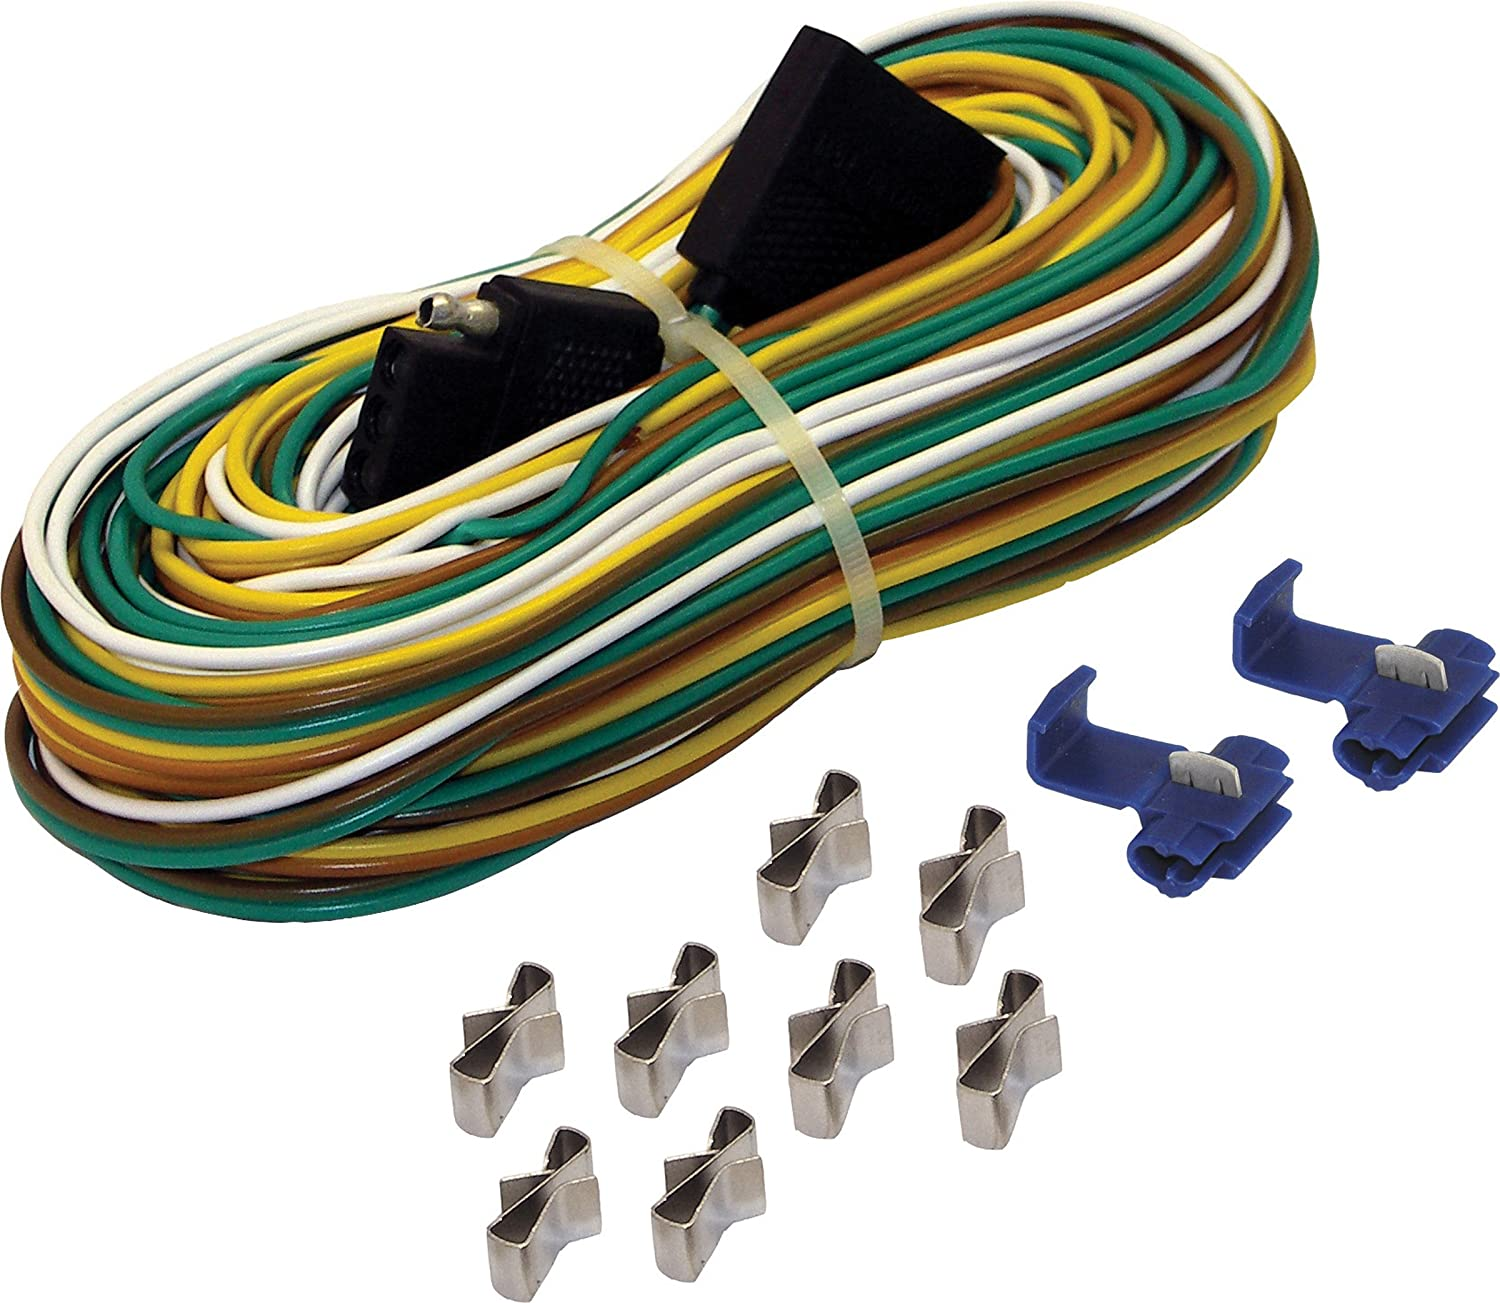 Sline Marine 4-Way Trailer Wire Harness (25-Feet) on